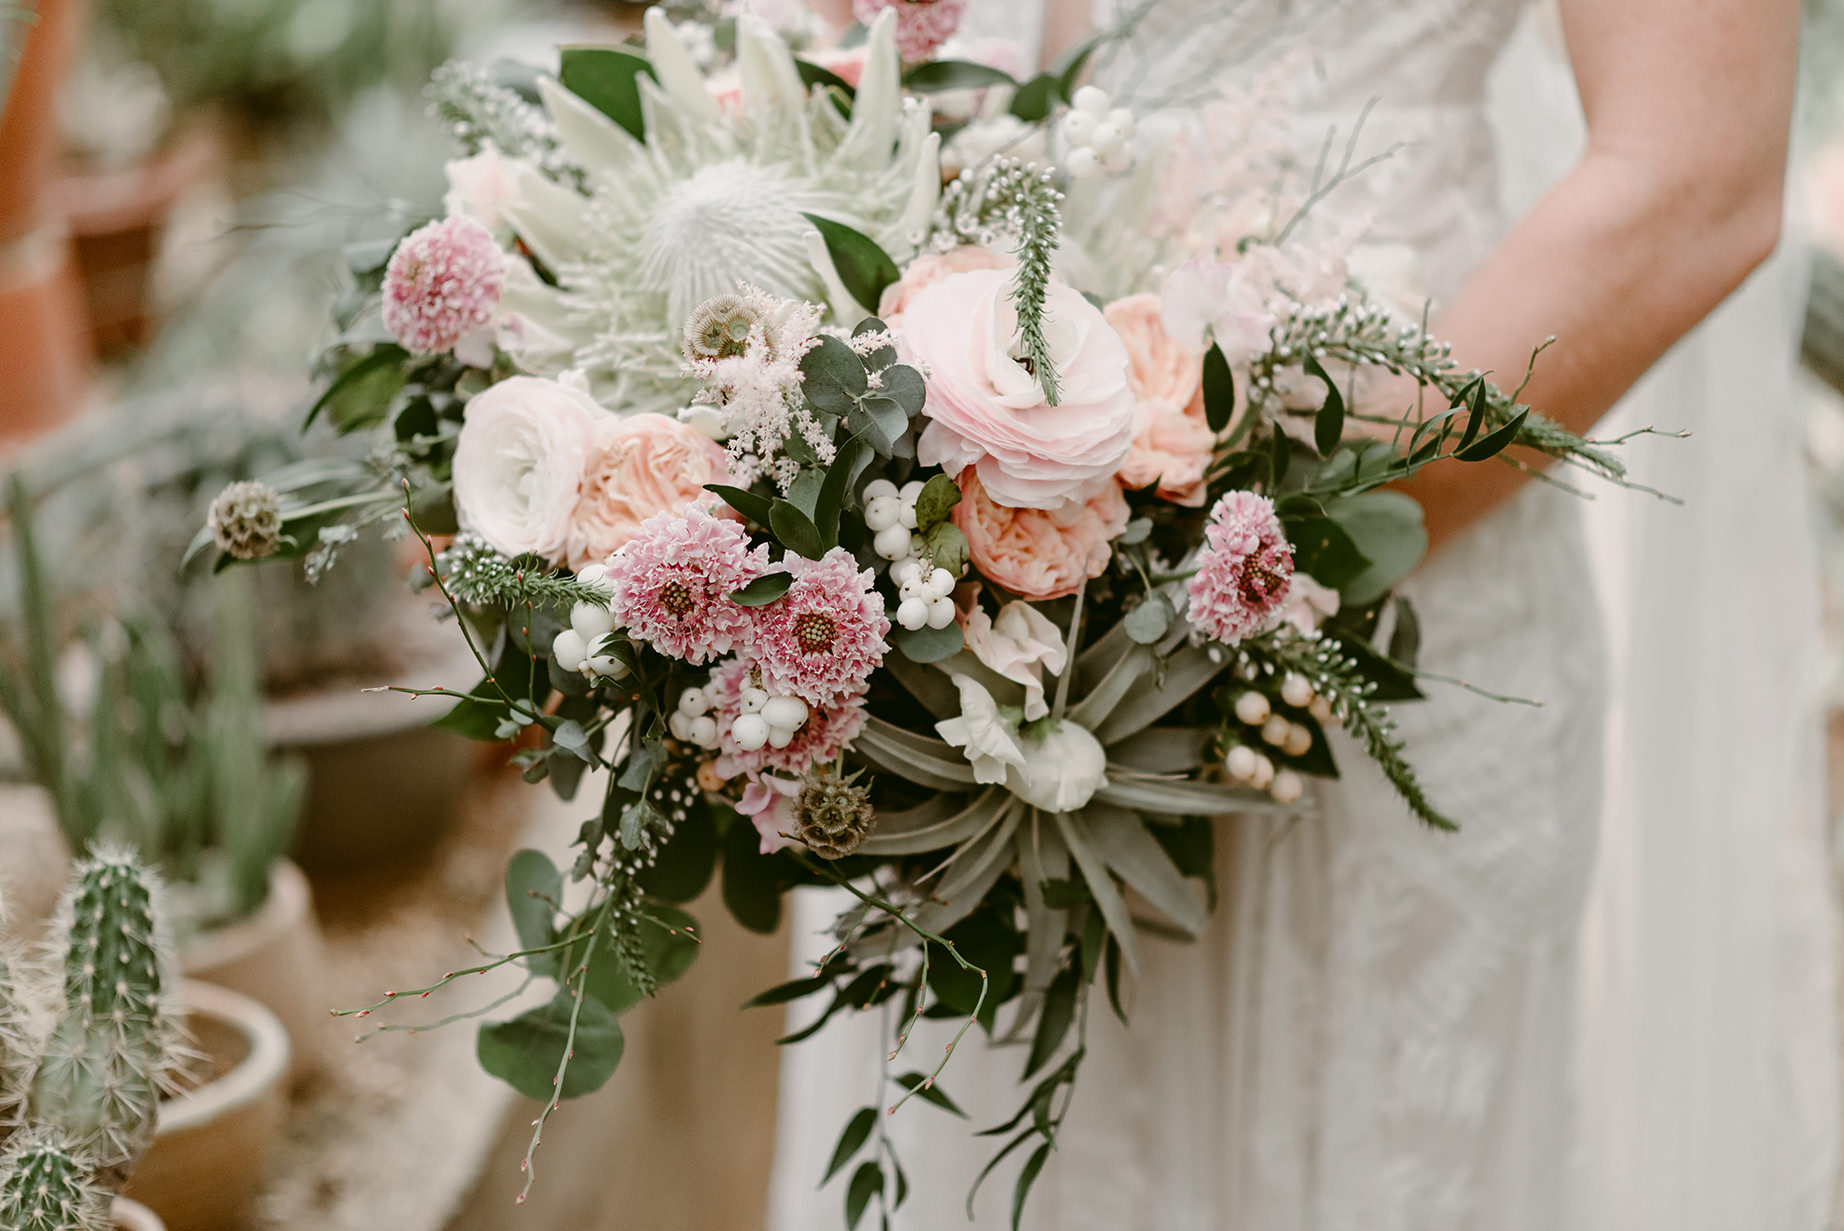 Vaso Bello bouquet photographed by  Julie Pepin Photography